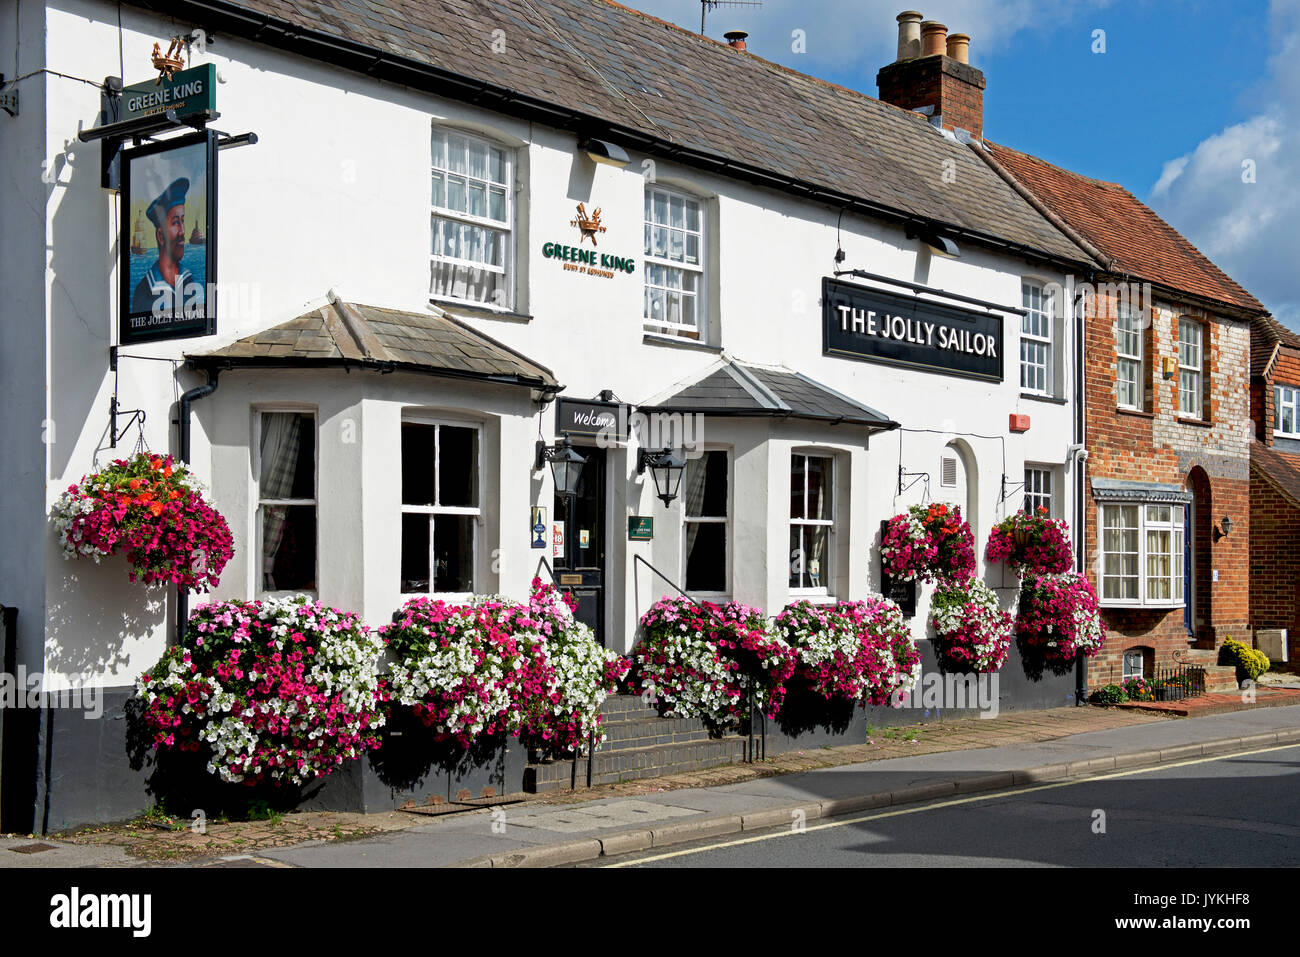 El Jolly Sailor pub, West Street, Farnham, Surrey, Inglaterra Imagen De Stock